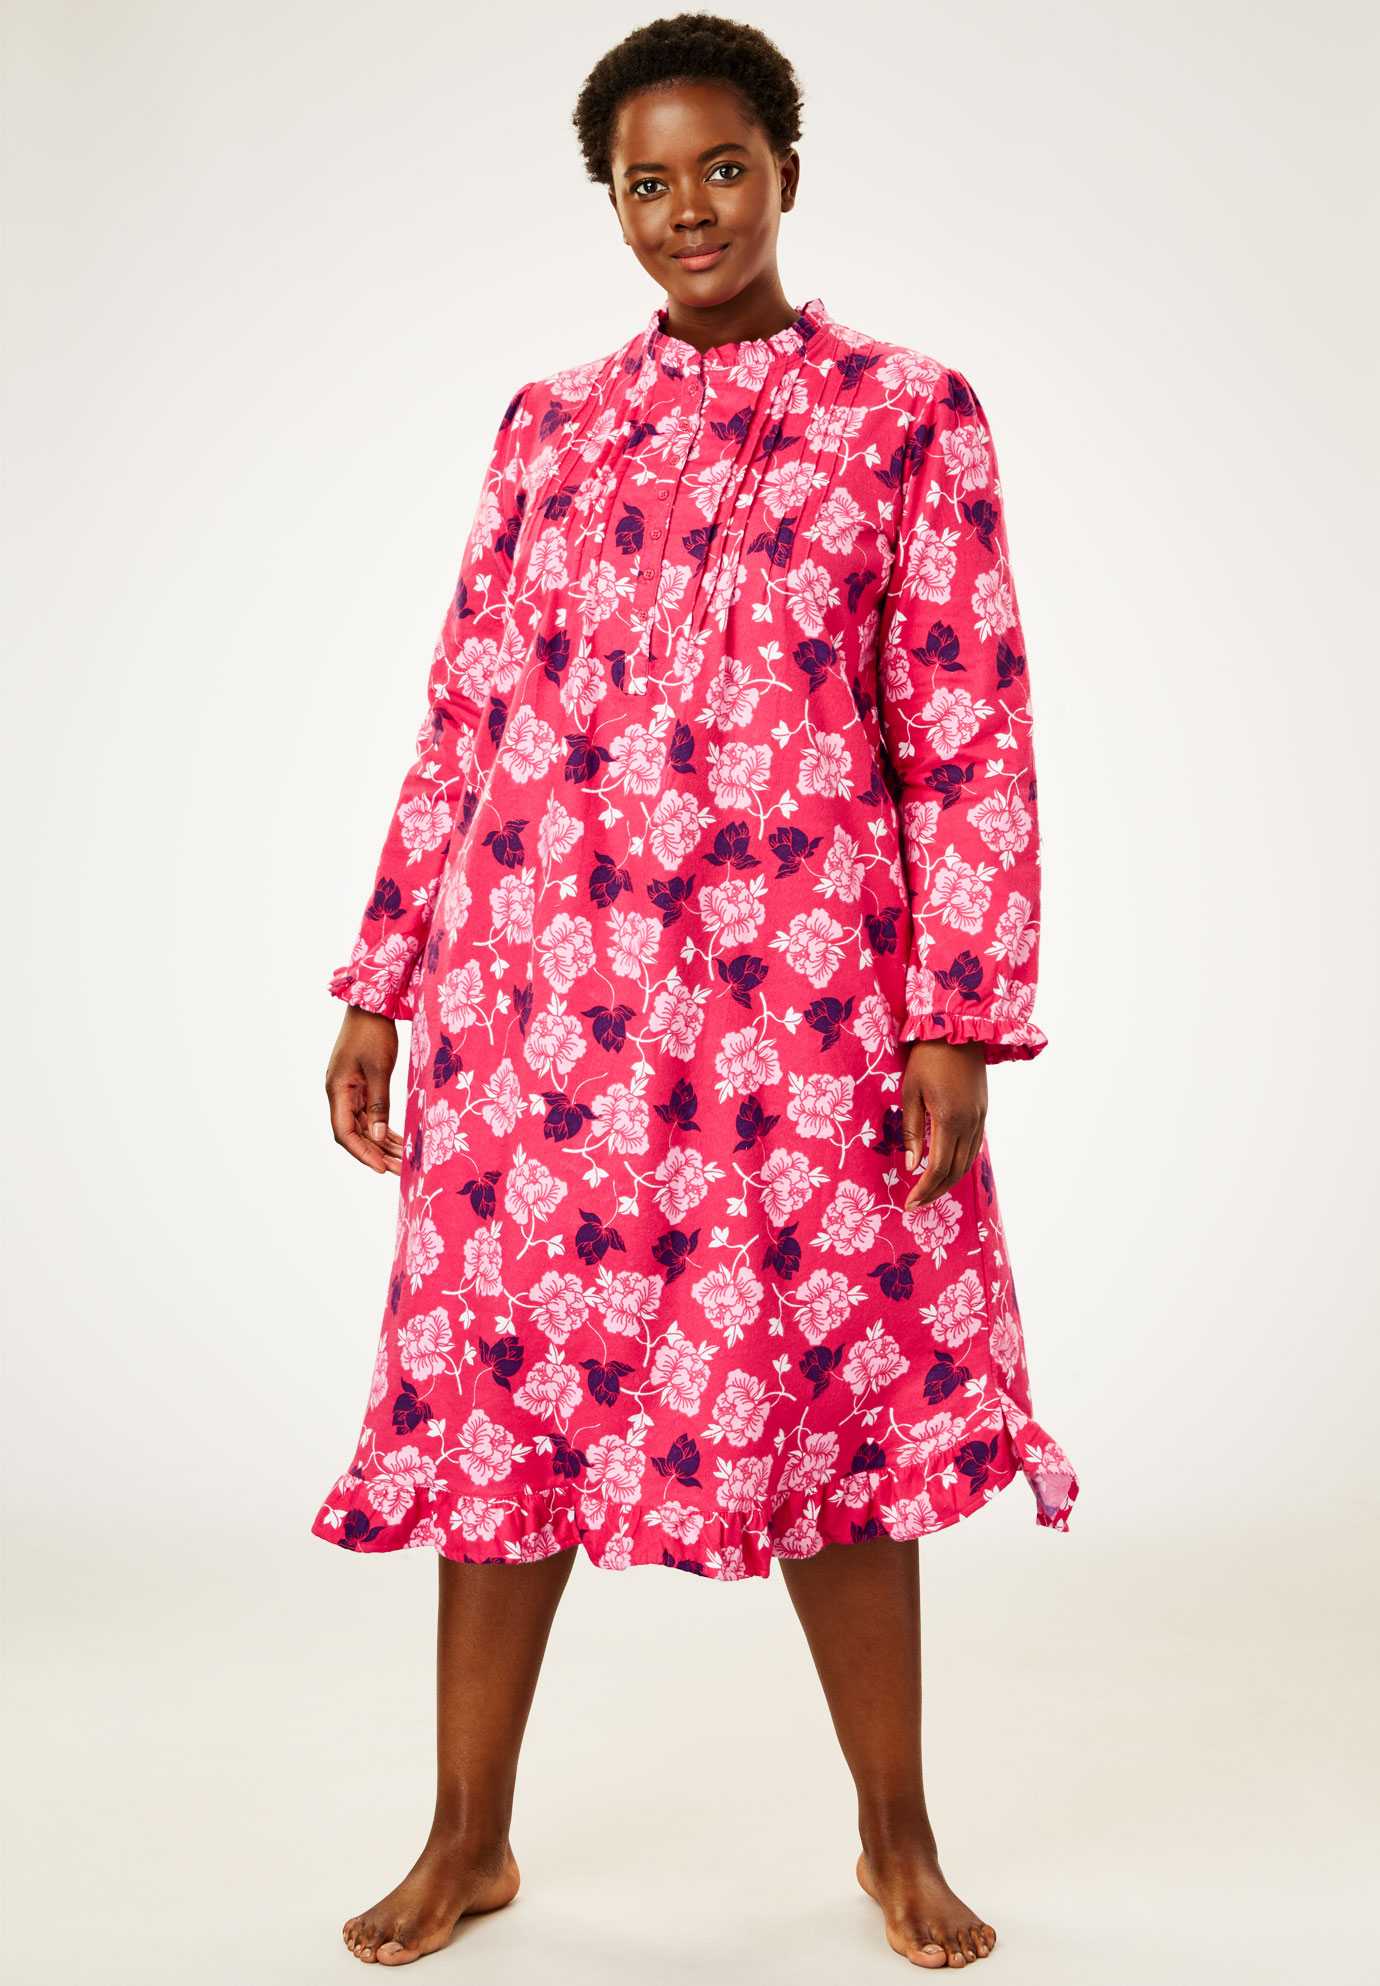 Cotton Flannel Print Short Gown By Only Necessities Plus Size